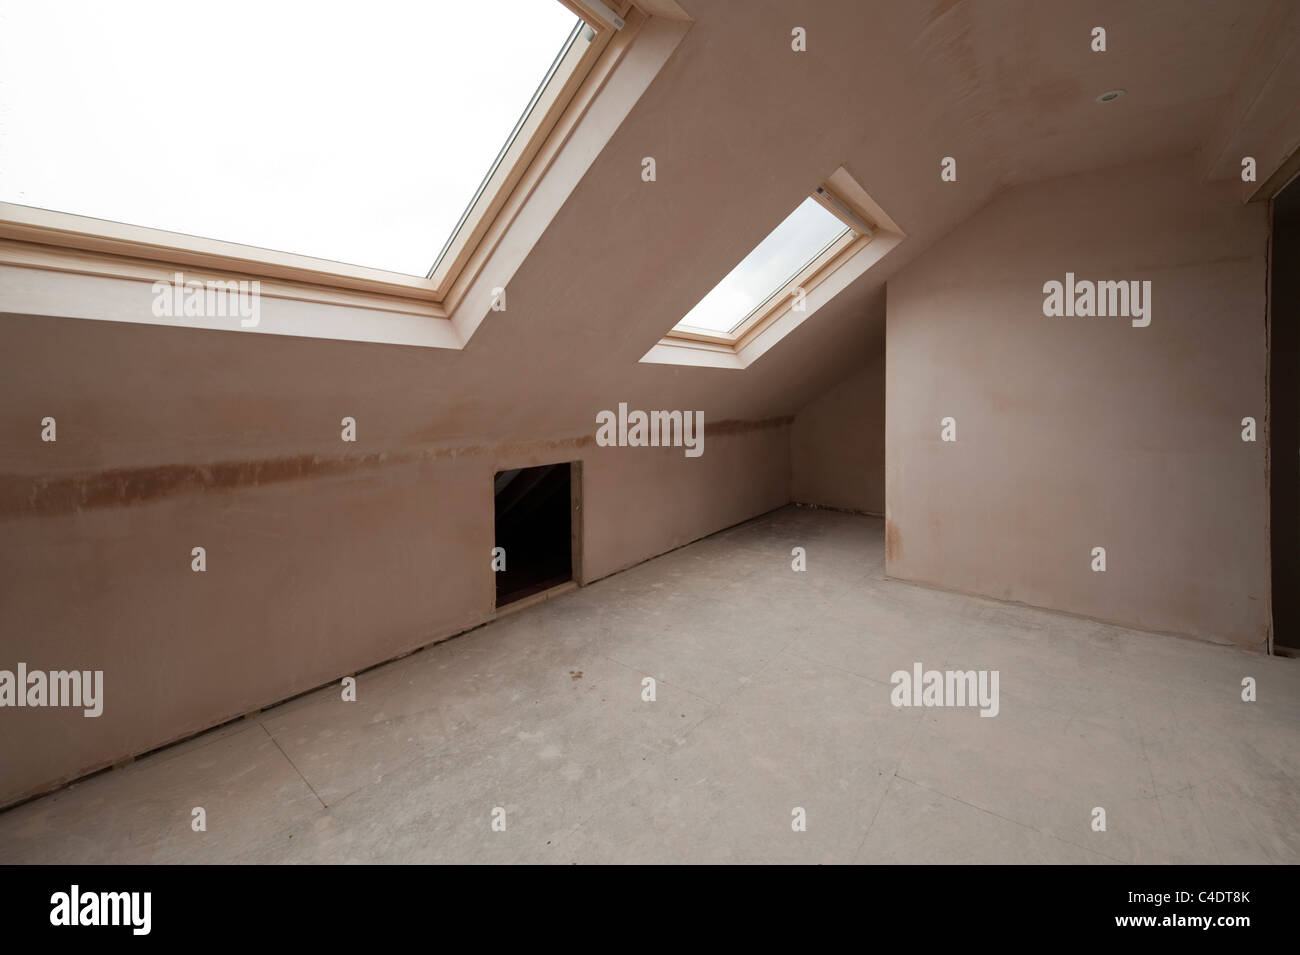 Newly built loft attic room in roof slope with Velux windows awaiting carpentry and decoration & Attic Room Storage Stock Photos \u0026 Attic Room Storage Stock Images ...